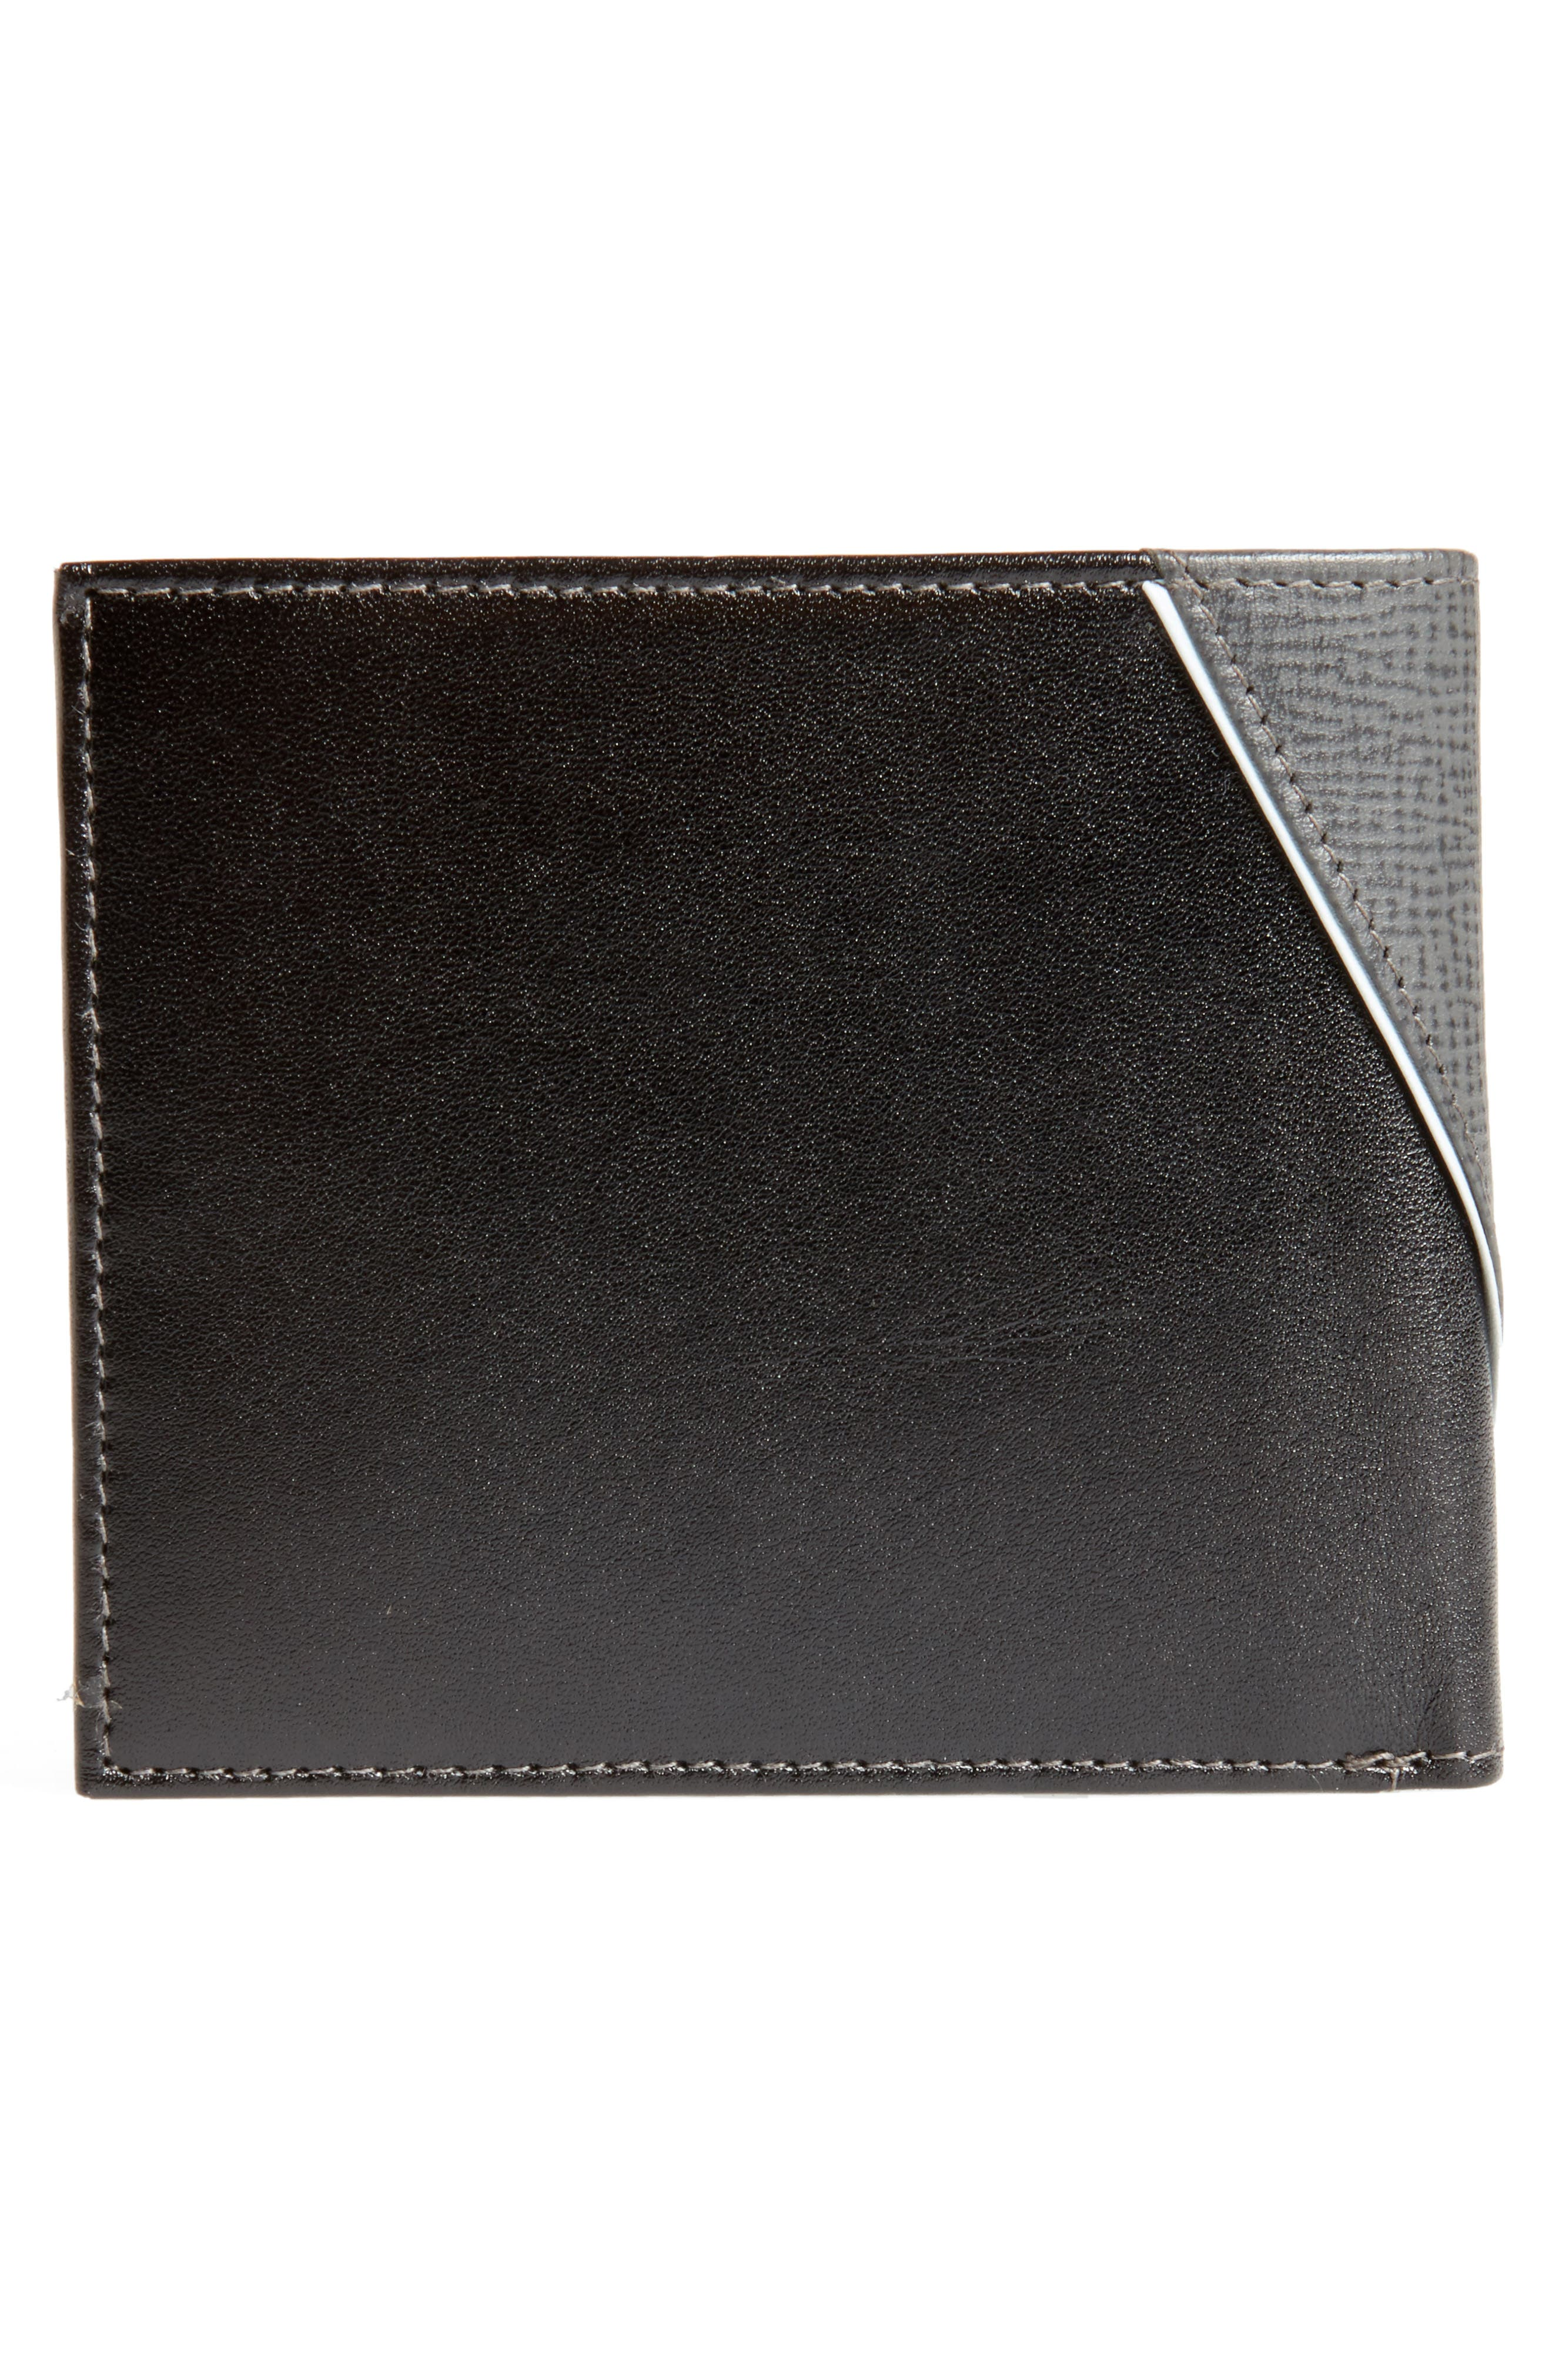 TED BAKER LONDON,                             Roller Textured Leather Wallet,                             Alternate thumbnail 3, color,                             020